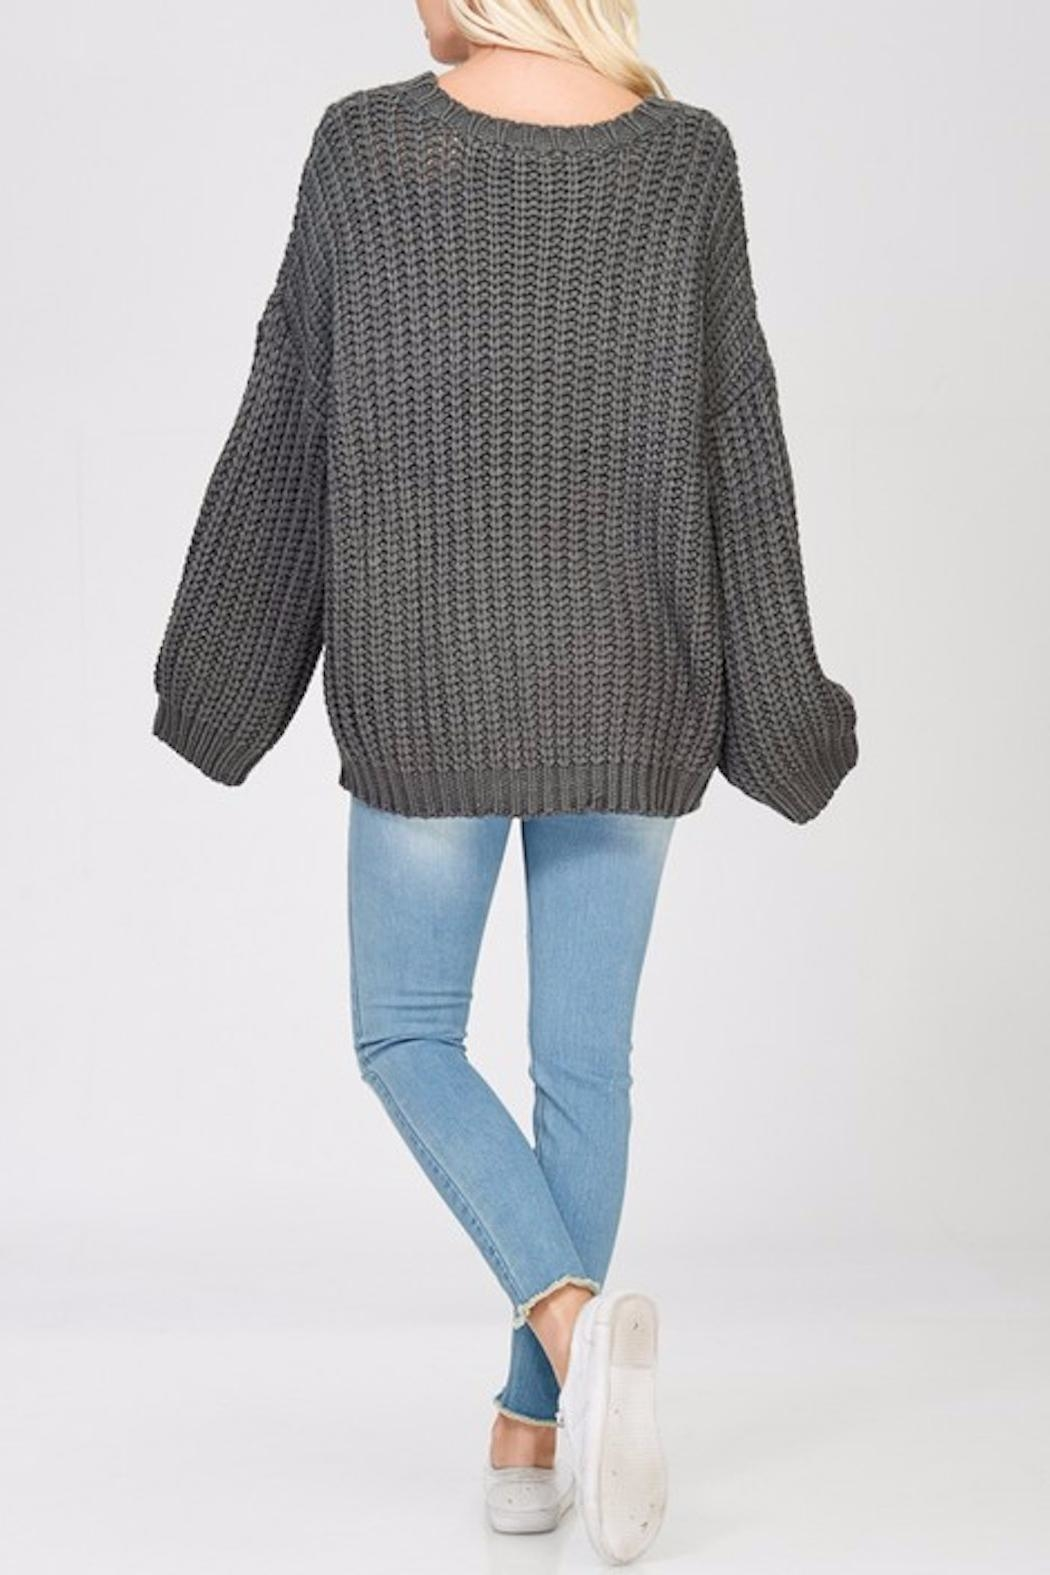 Apricot Lane Glad Tidings Sweater - Side Cropped Image